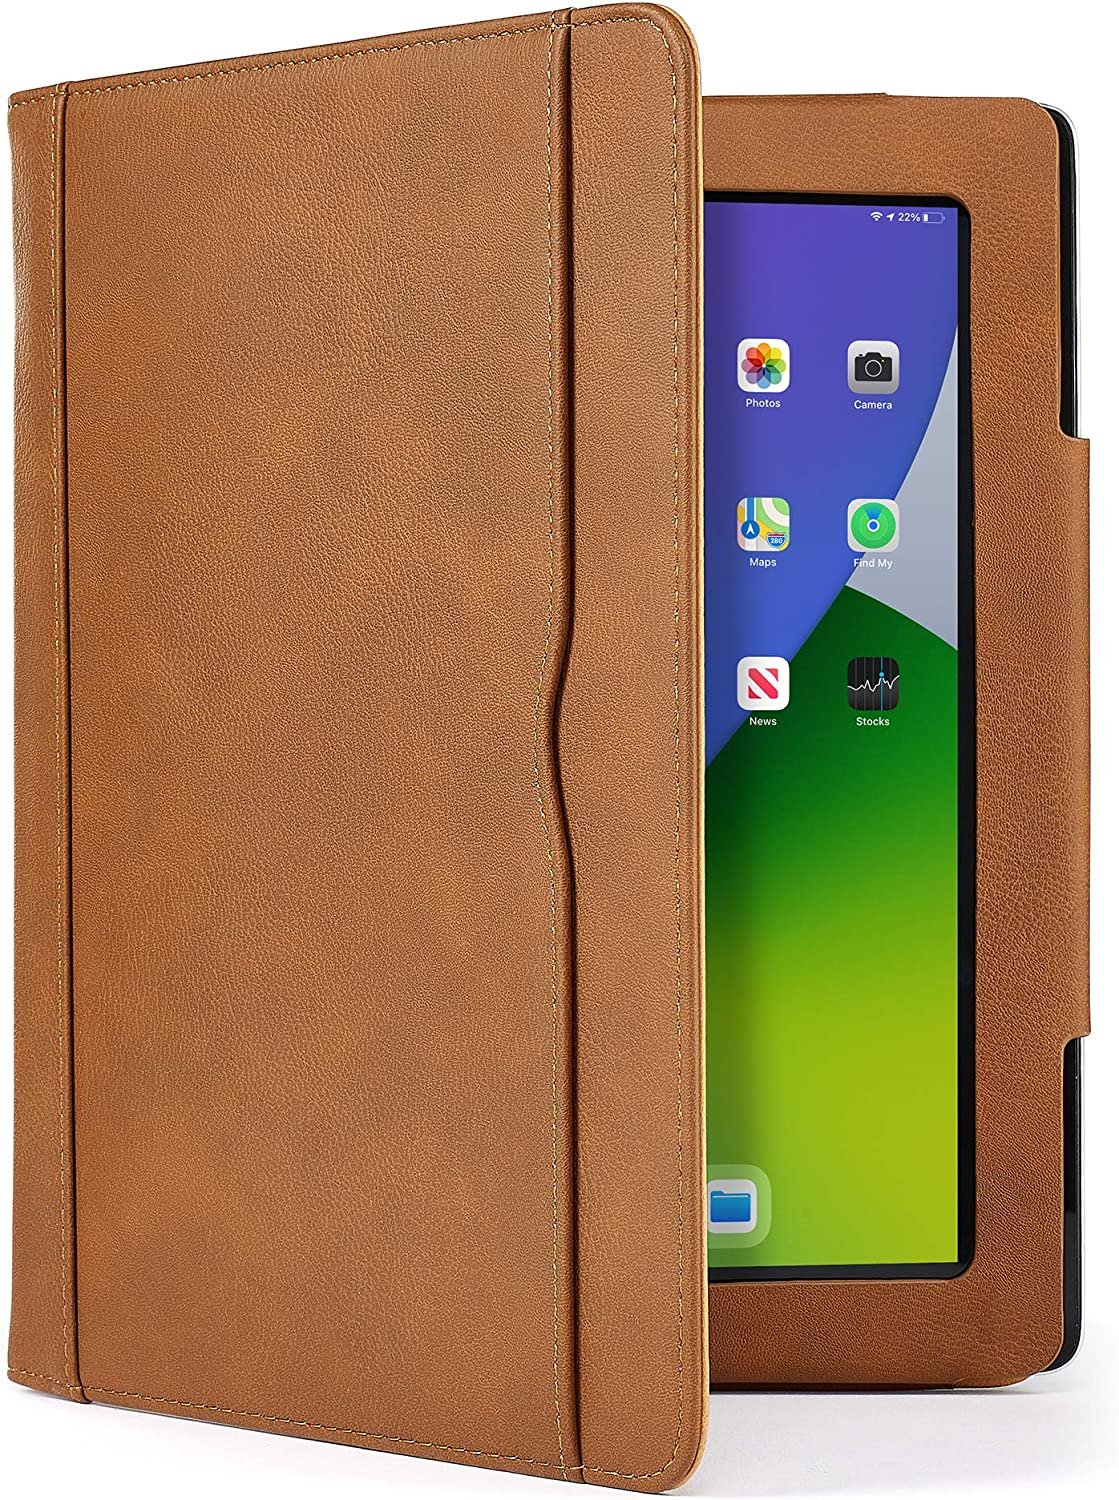 S-Tech iPad Air Case (4th Generation 2020 Model) Soft Leather Wallet Magnetic Smart Cover with Sleep/ Wake Feature Flip Folio Stand with Pencil Holder for Apple A2324 A2316 A2325 A2072 (Brown)